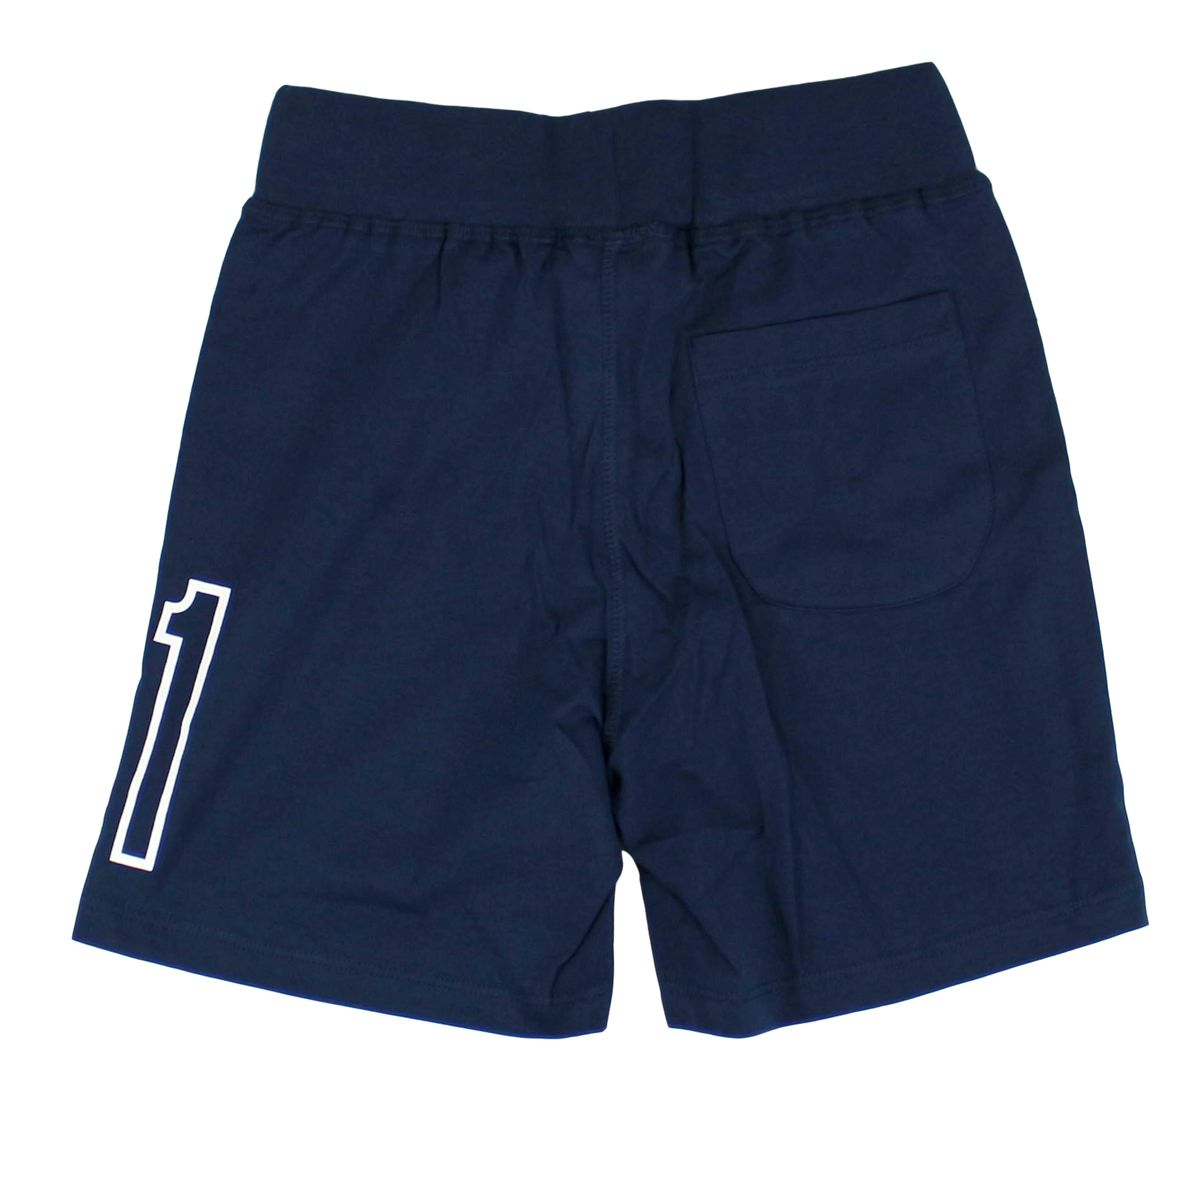 Shorts with side logo Blue Bikkembergs